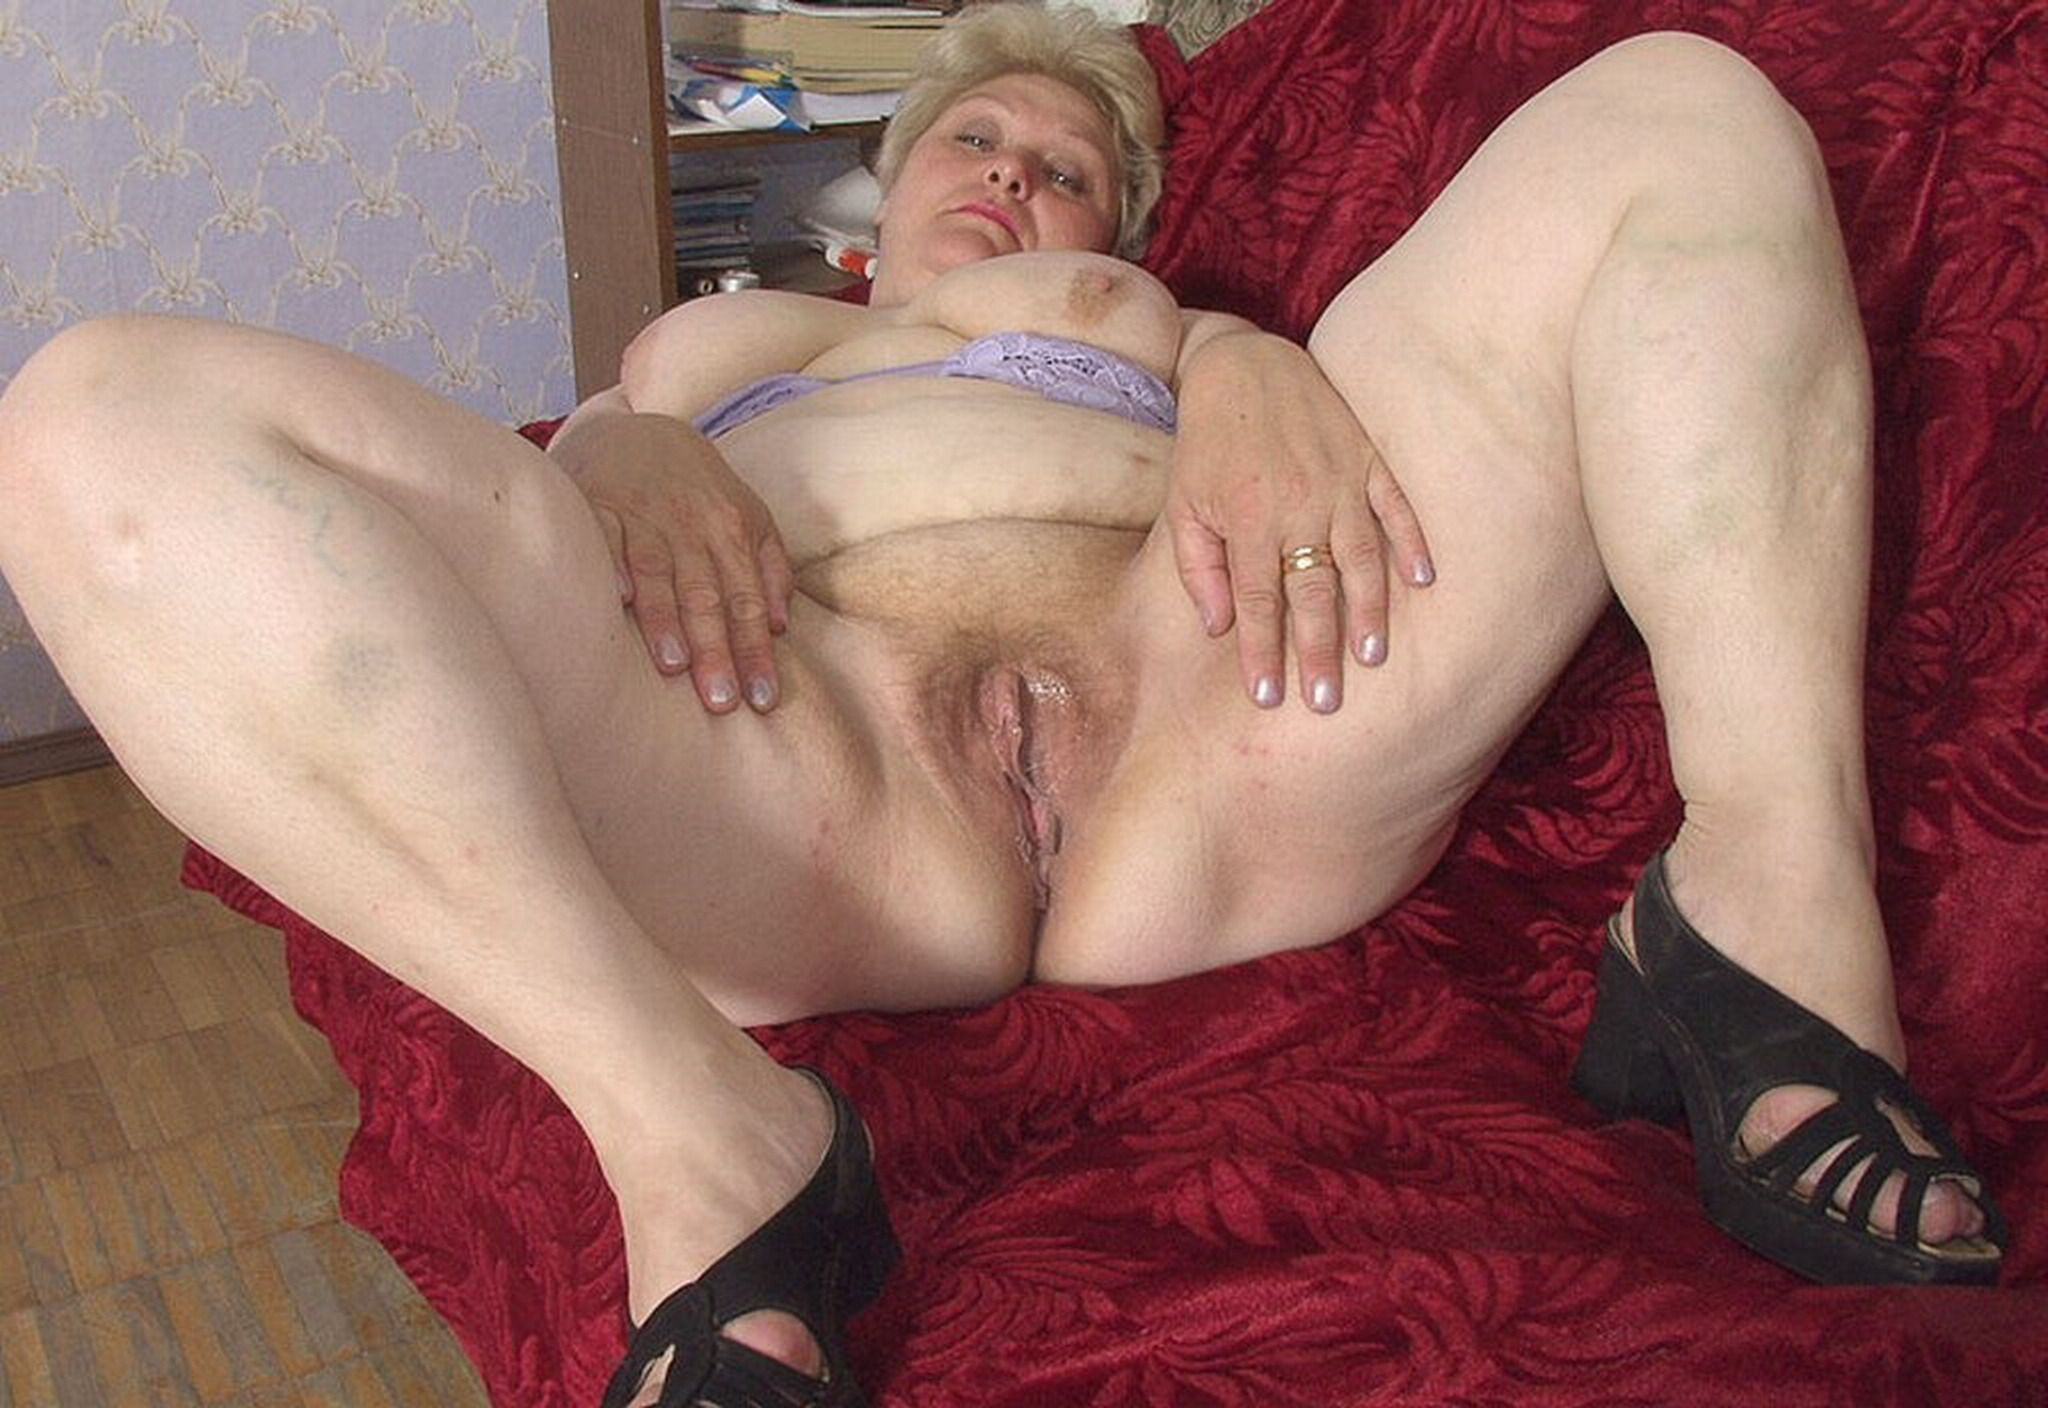 Hd granny nude sex video